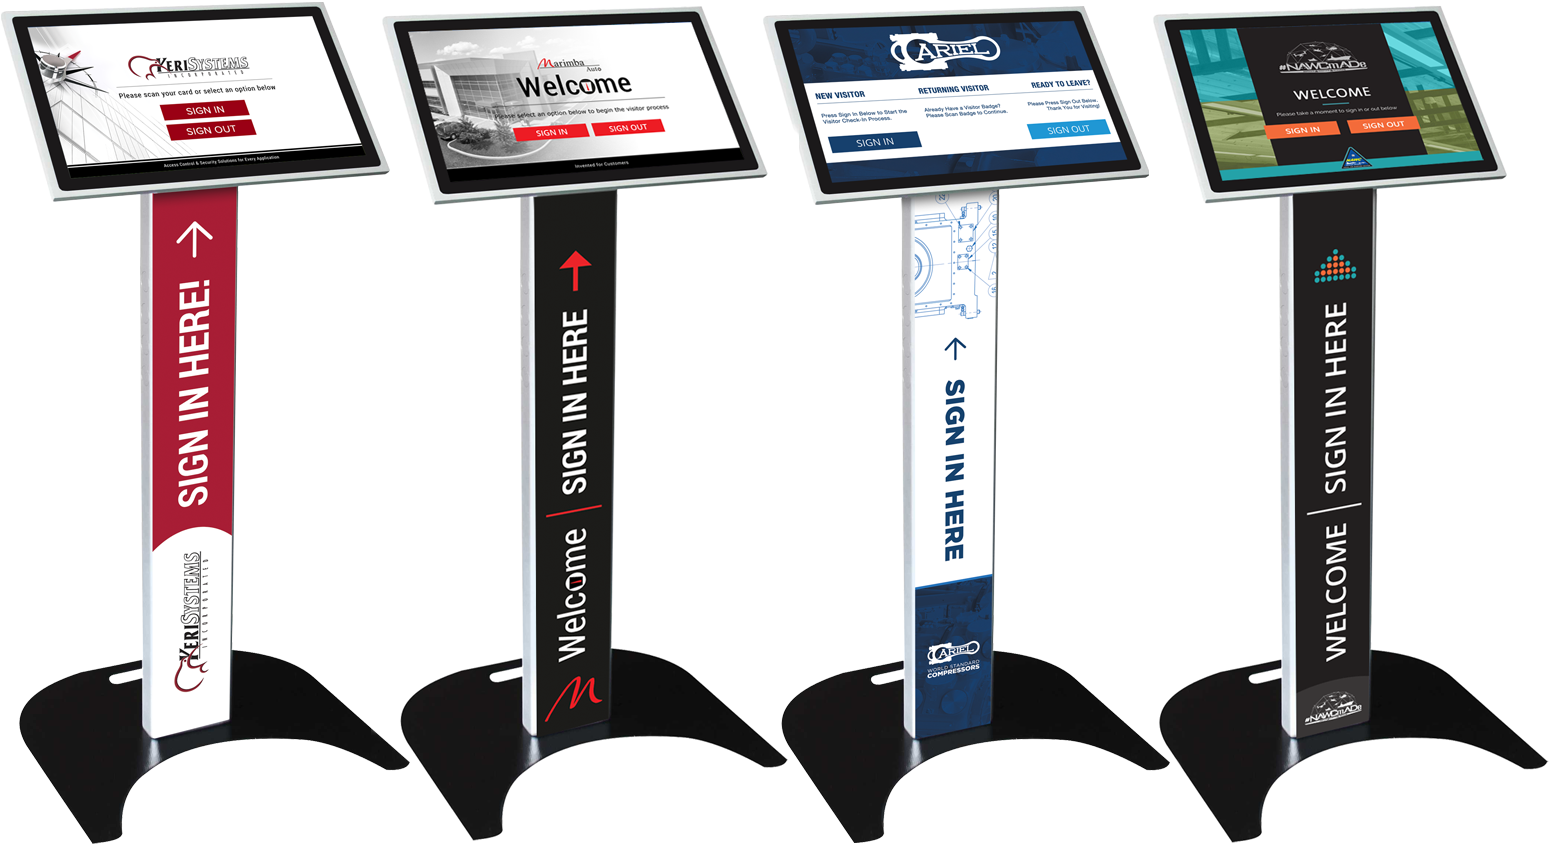 Sleek podium-style visitor management self check-in kiosks